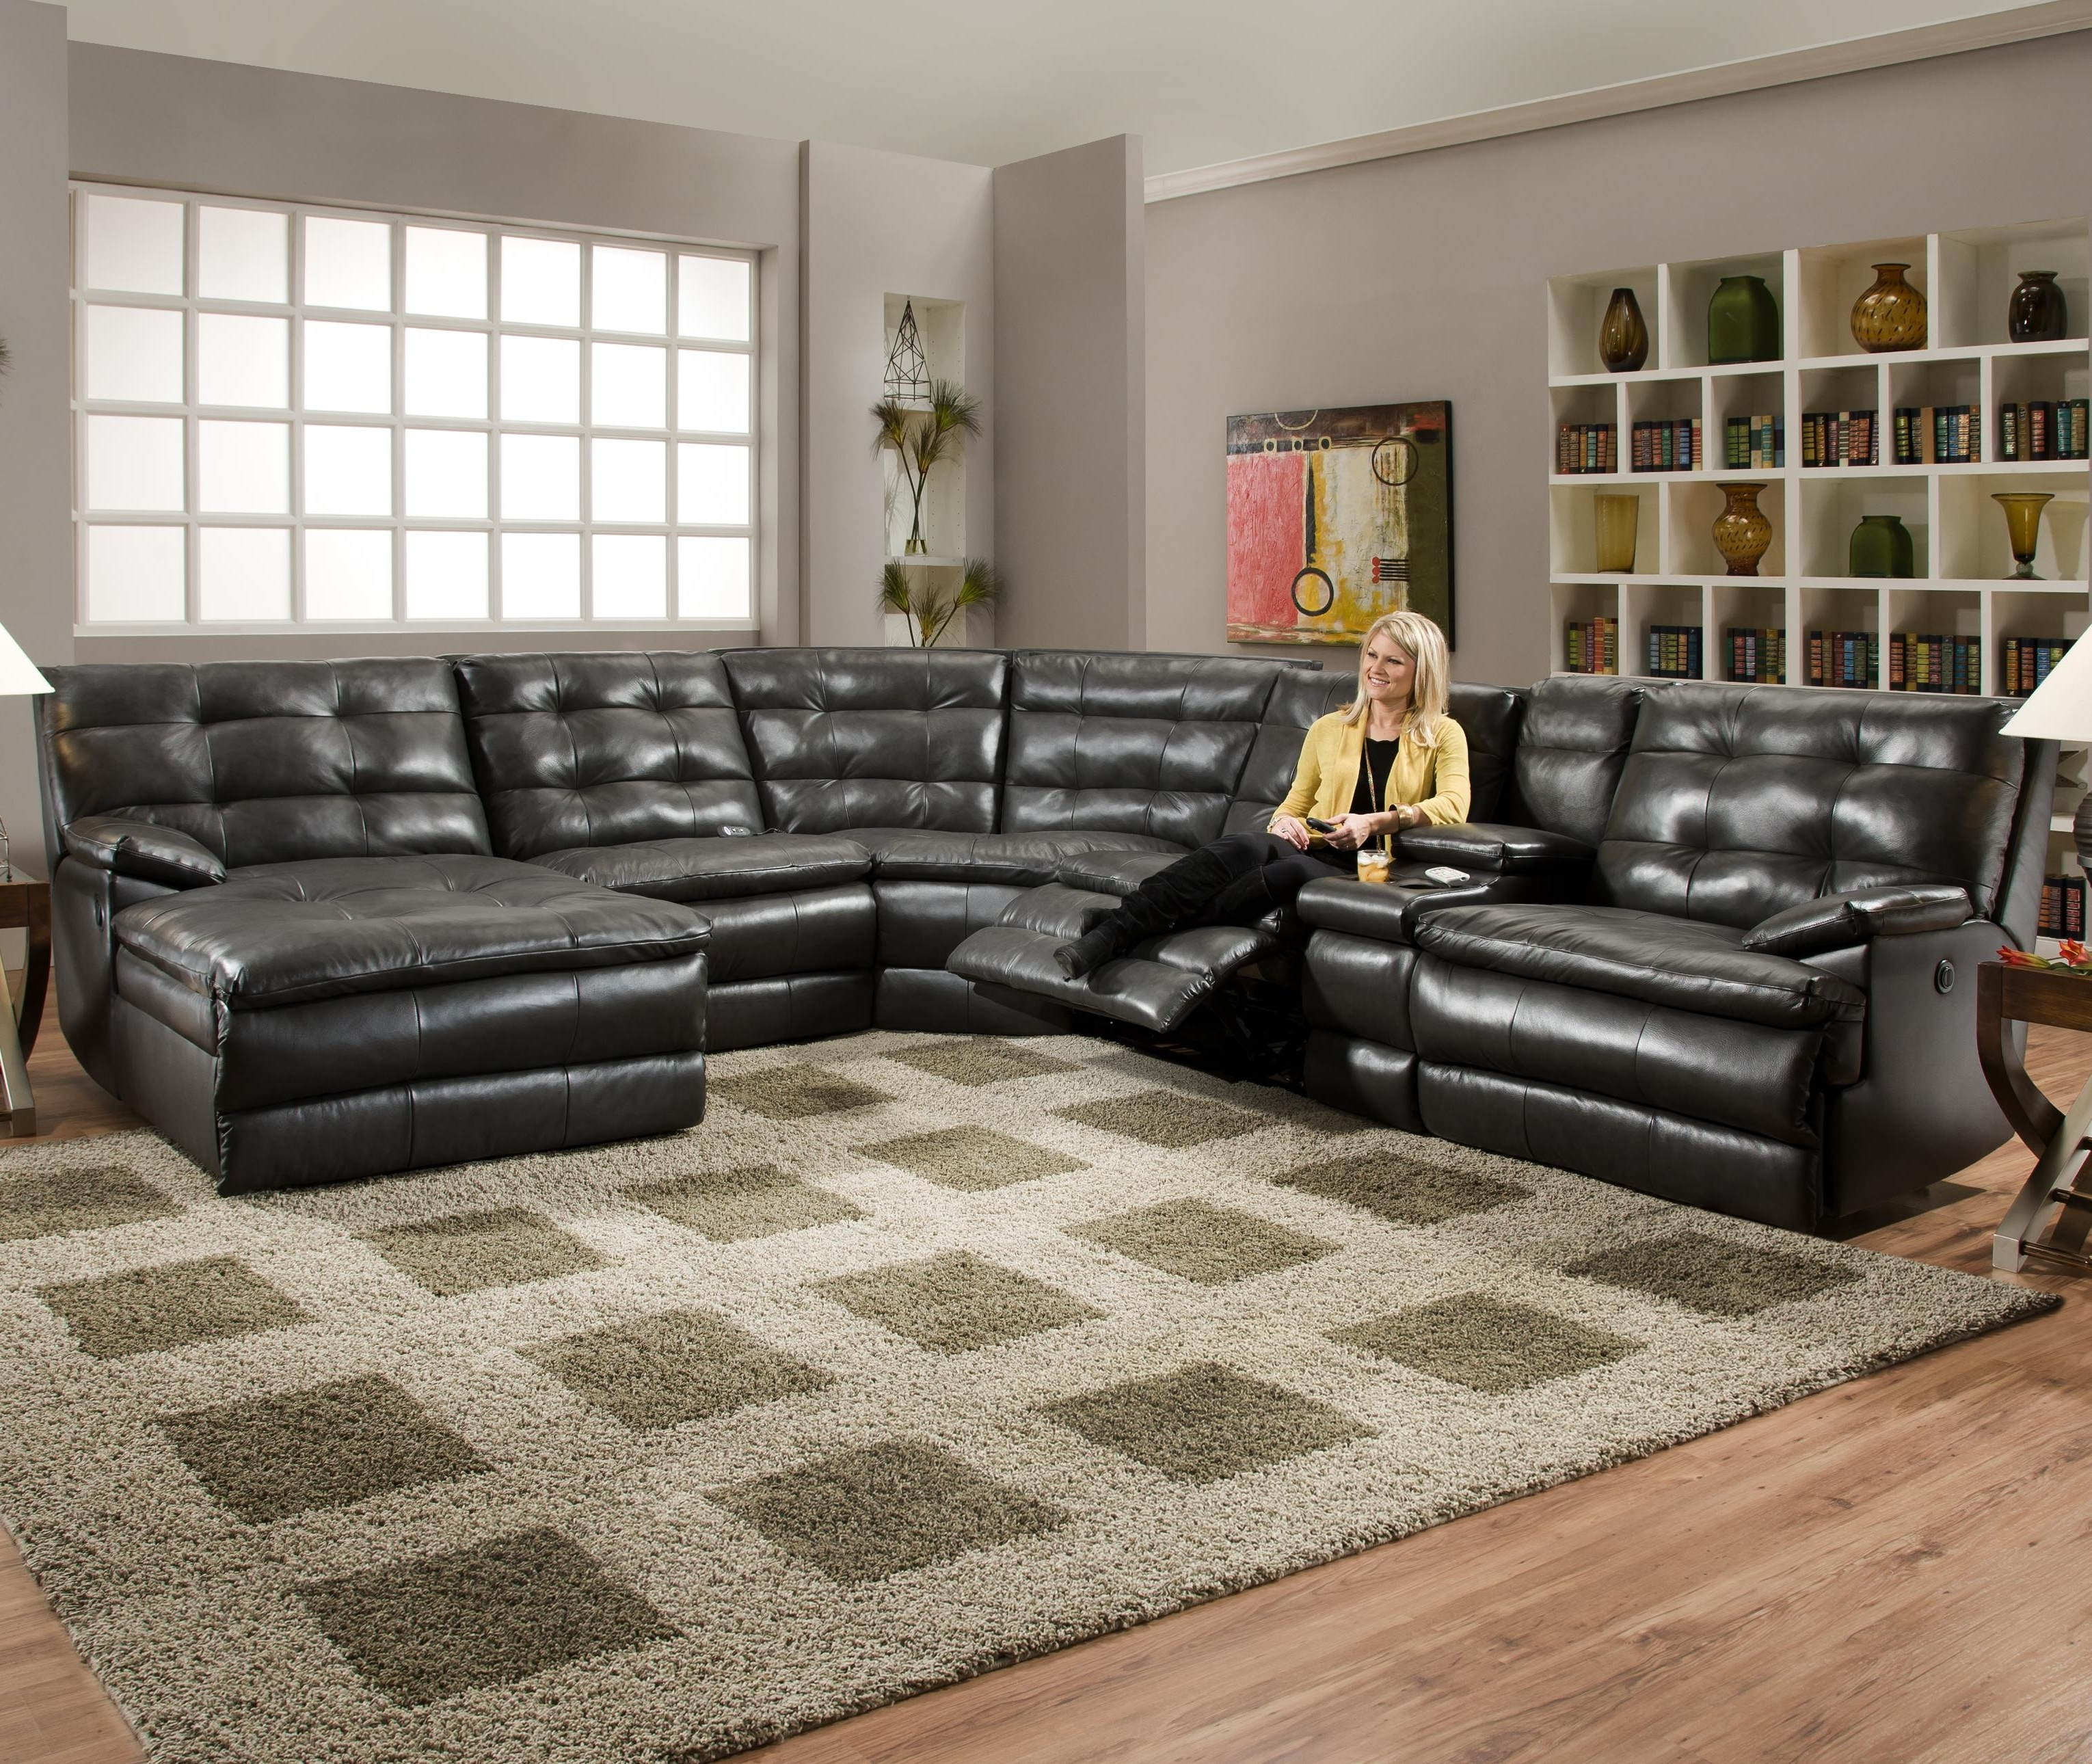 Popular Large Sectional Sofas With Regard To Luxurious Tufted Leather Sectional Sofa In Classy Black Color With (View 14 of 20)